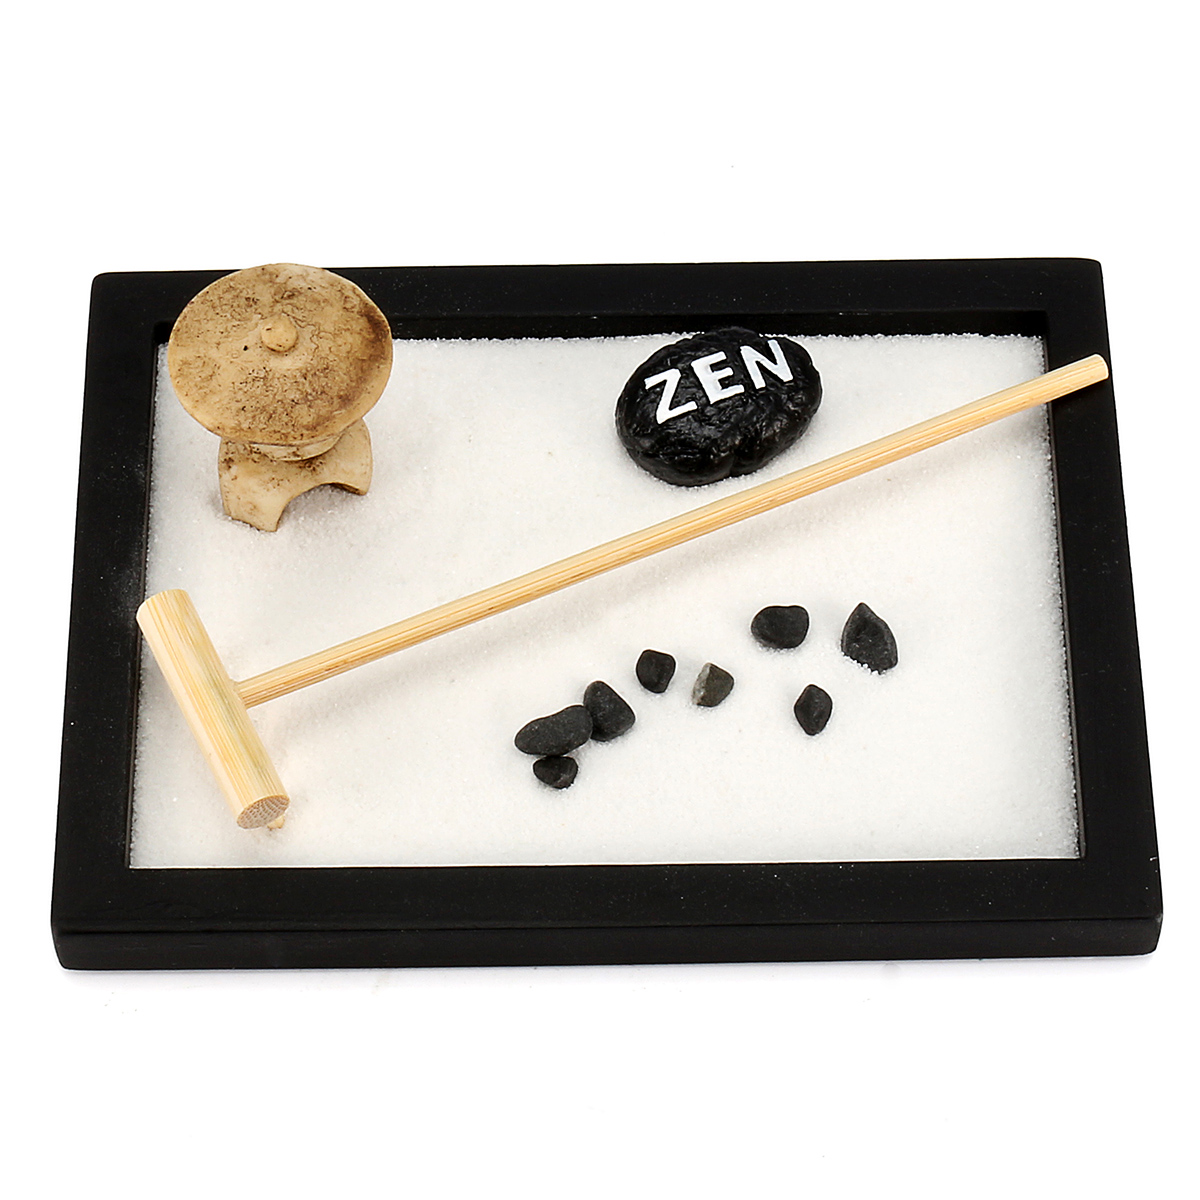 Mini Relax Peace Meditation Kit Yoga Office Feng Shui Sand Pebble Rack Tabletop Decor Gift